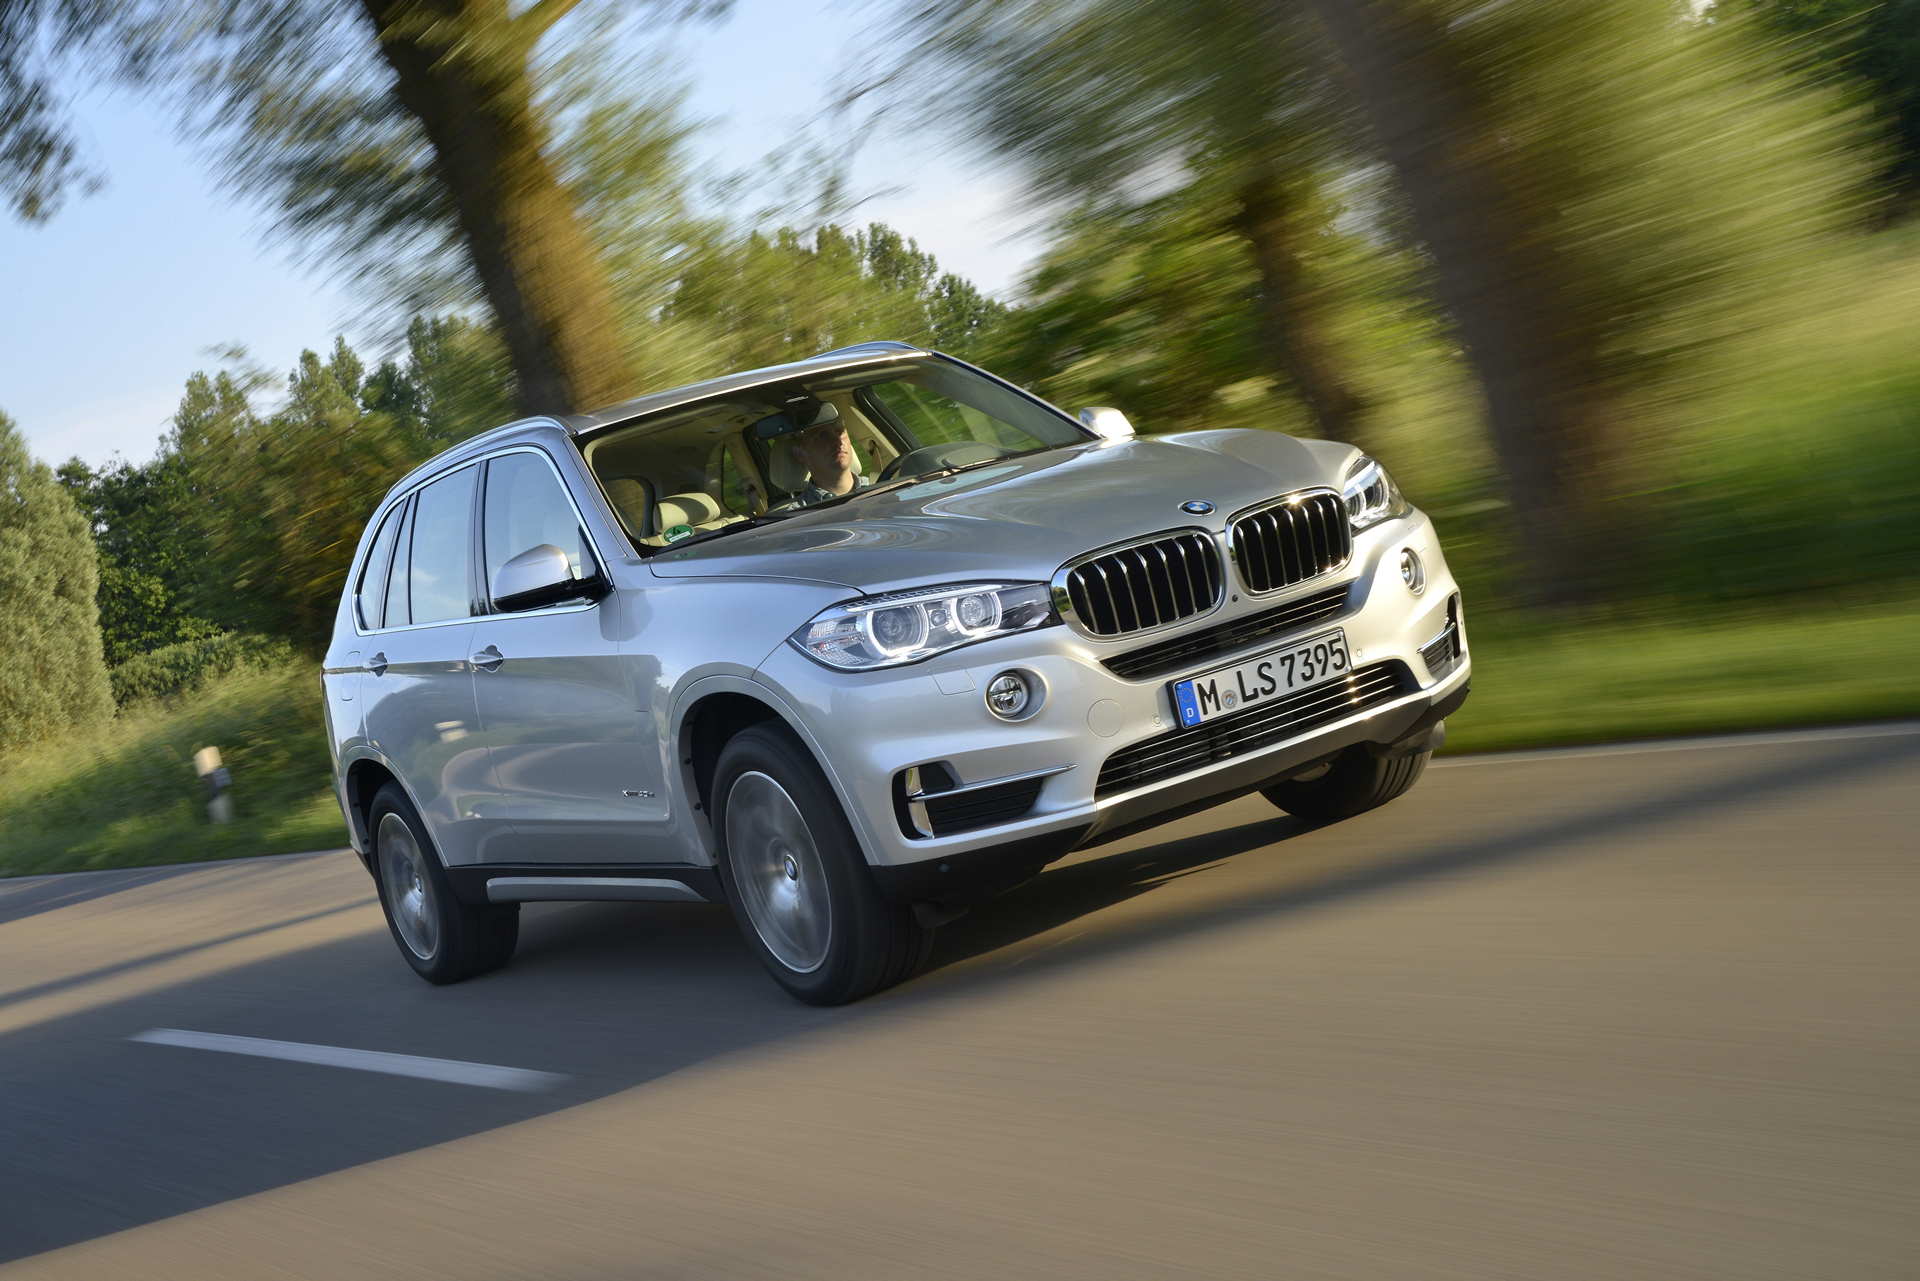 Best Luxury Midsize SUVs for 2016-2017